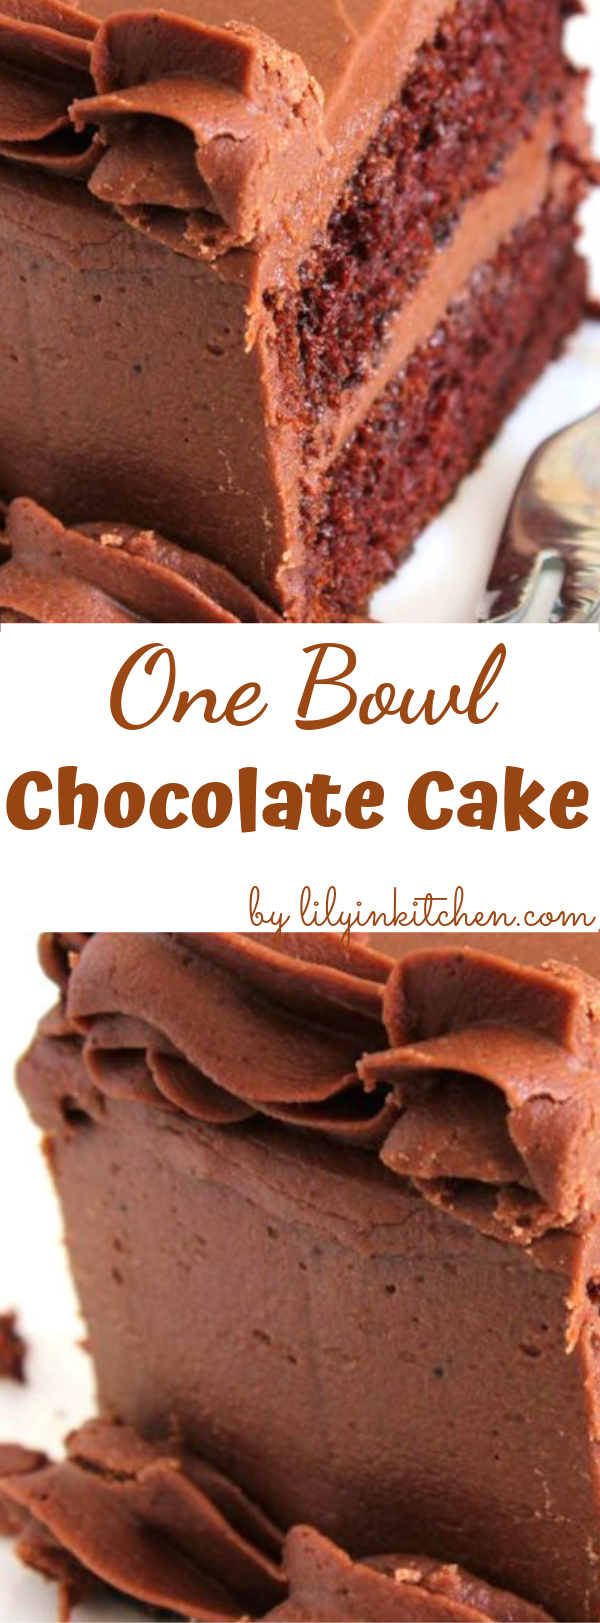 This is a rich, creamy and moist one-bowl chocolate cake recipe. You will need only a few minutes to prepare the batter. You can frost with your favorite chocolate frosting. #chocolatecake #chocolatecakerecipe #chocolatelayercake #cake